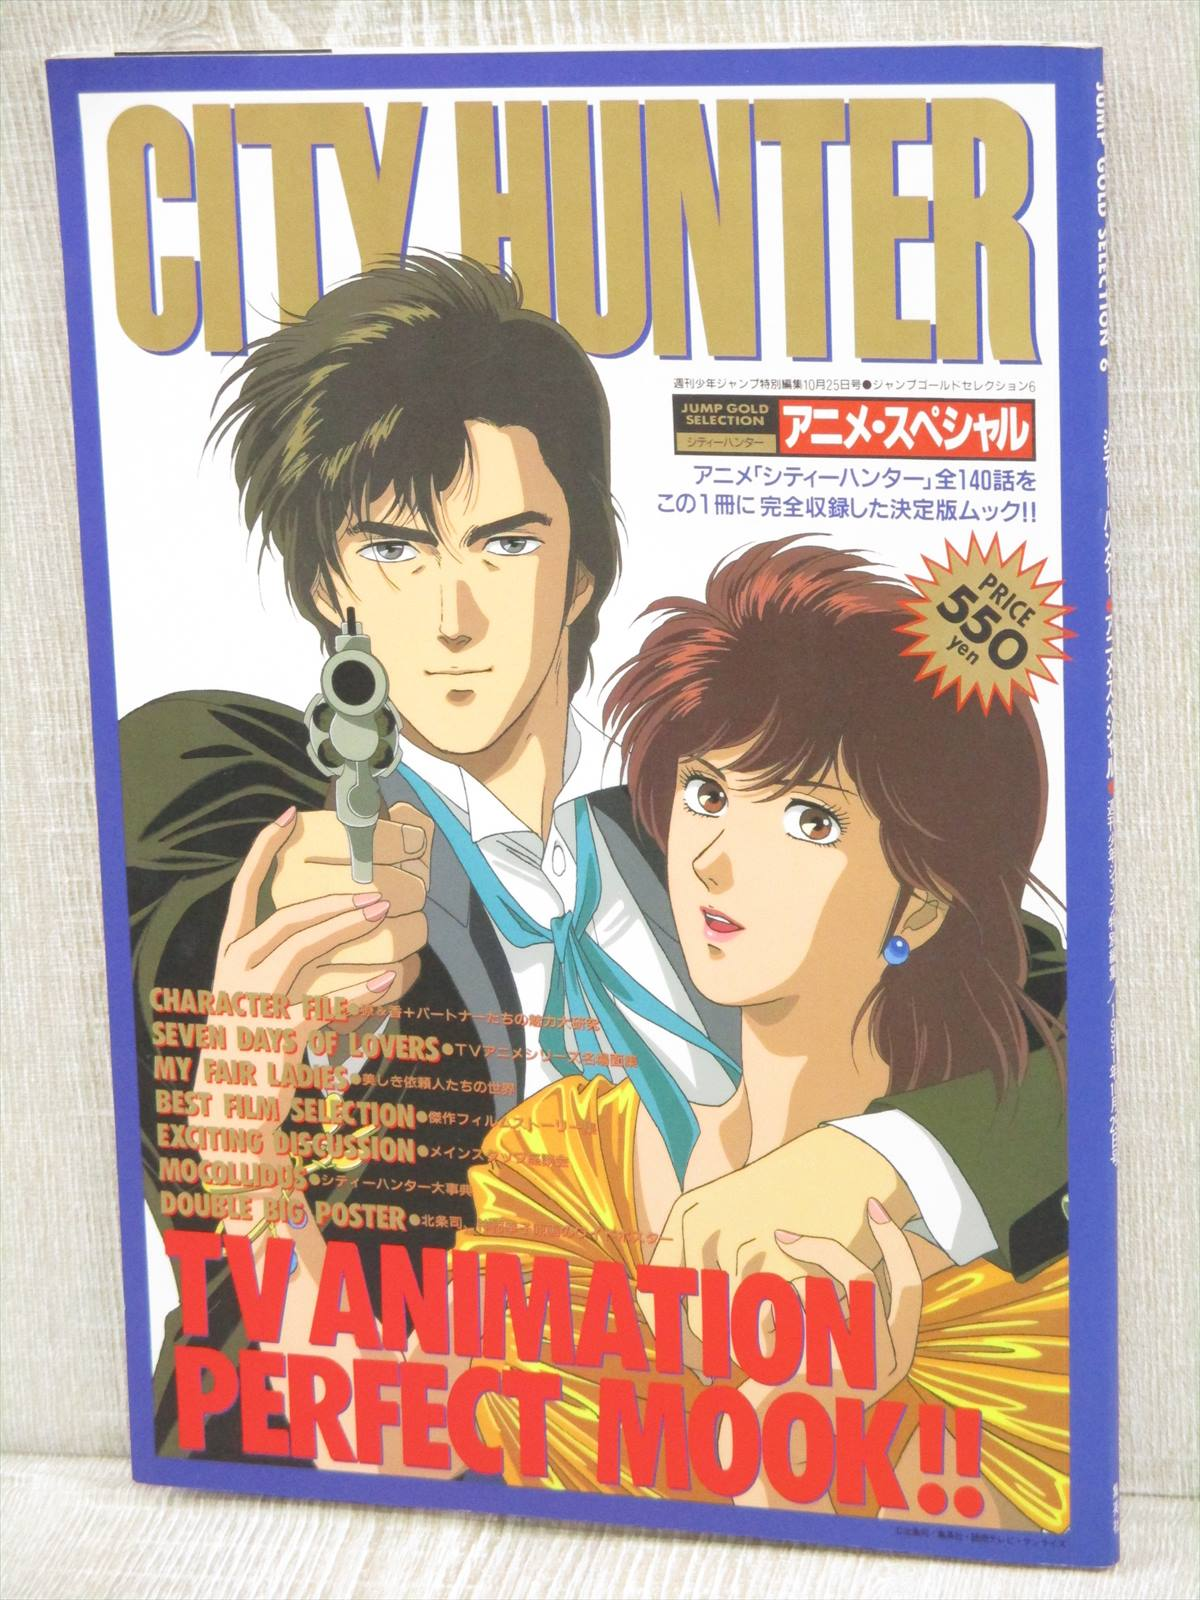 Details About City Hunter Anime Special W Poster Tsukasa Hojo Art Book Sh